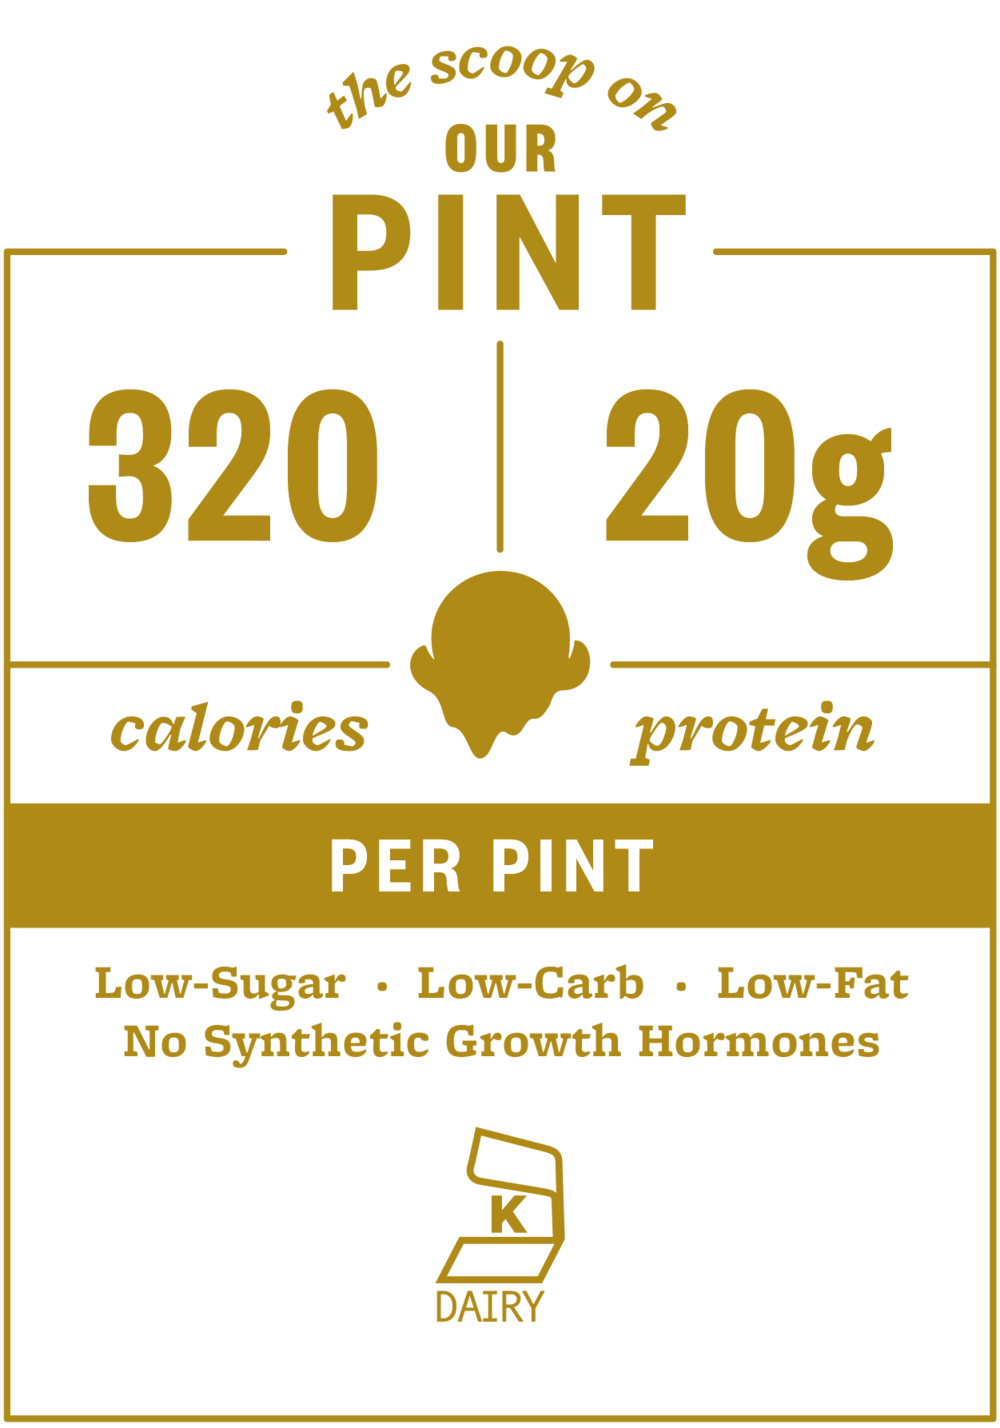 HT_Flavors_Scoop-Facts_170320_320cal-20g df.png